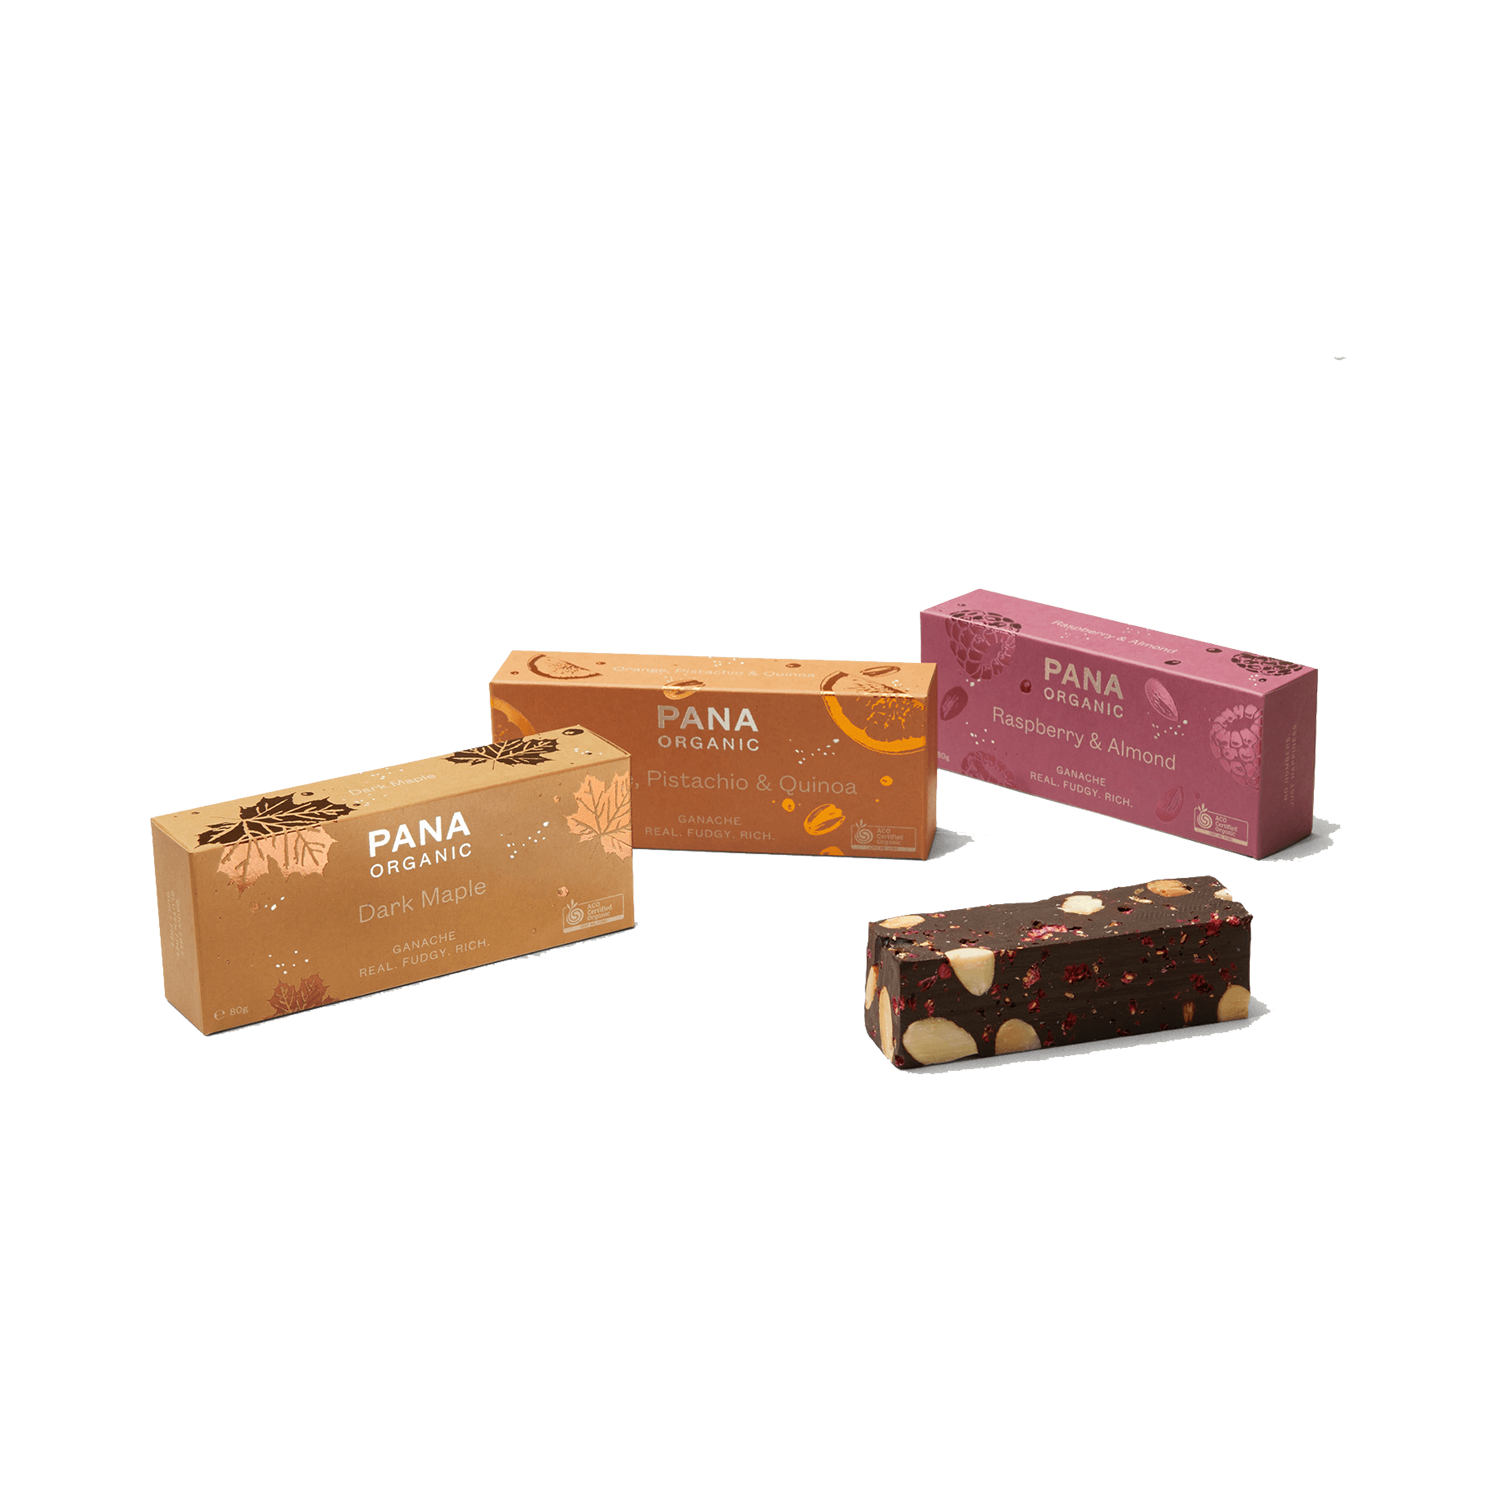 pana ganache - 80g Bars ( Box of 8 ) 3 FlavoursMove over everyone. We've got a treat you want to get your hands on. Perfect for picnics, grazing boards, or a night in with your favourite red.Gluten free, dairy free and super fudgy leaving you wanting more of this wow tasting treat. Go on, we won't judge.DISCOVER OUR NEW FLAVOURS:Orange & Pistachio, Dark Maple, Raspberry & Almond.